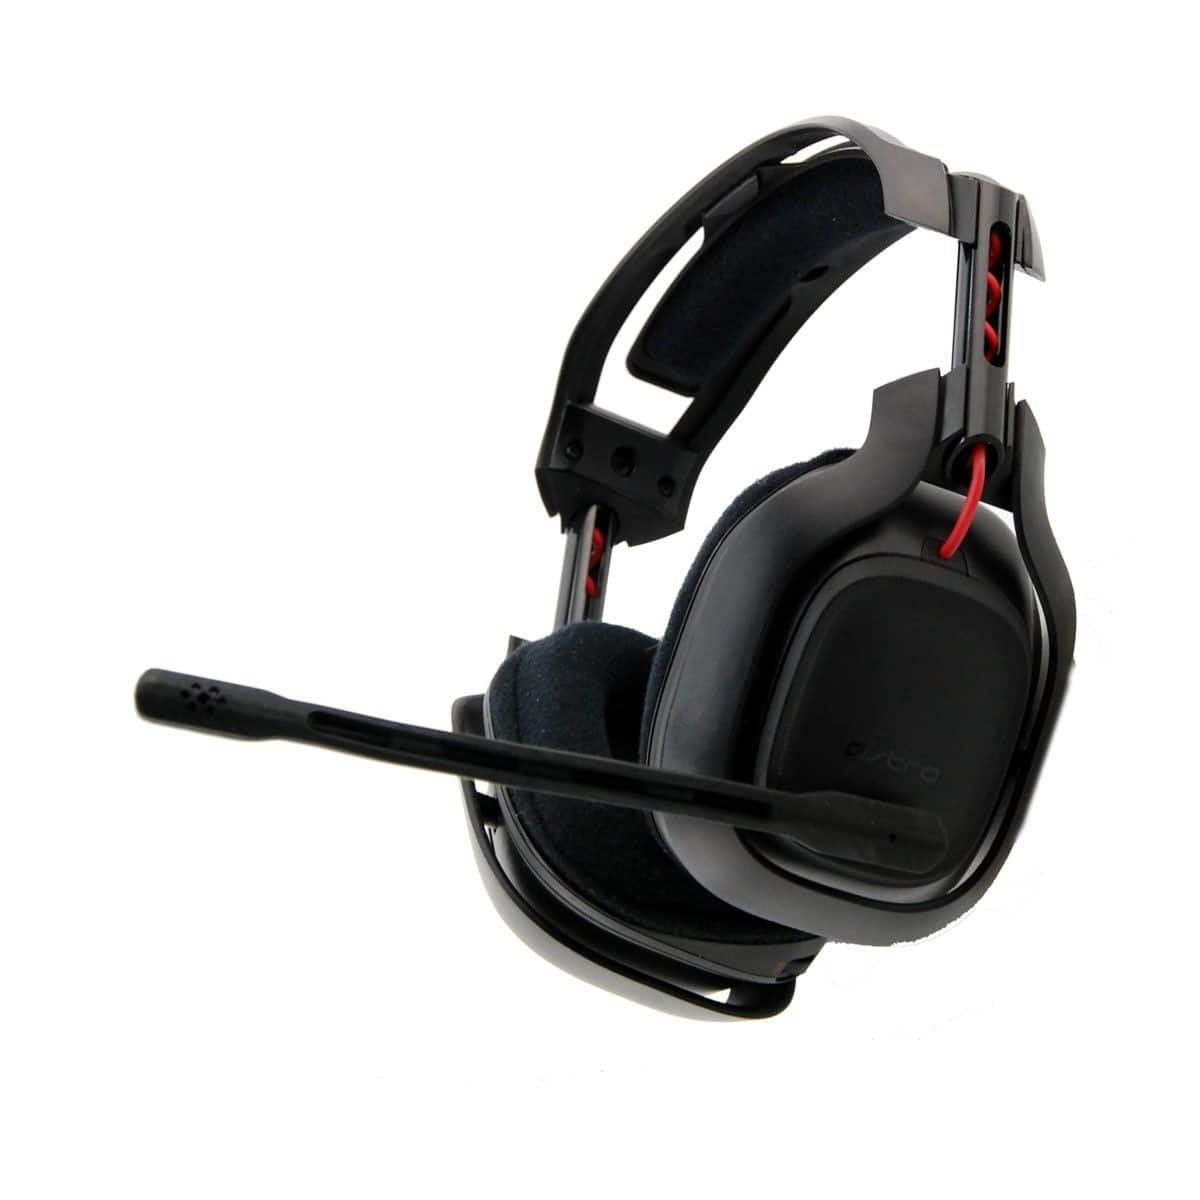 ASTRO A50 Wireless Gaming Headset in Black (Refurbished)  $50 + Free Shipping